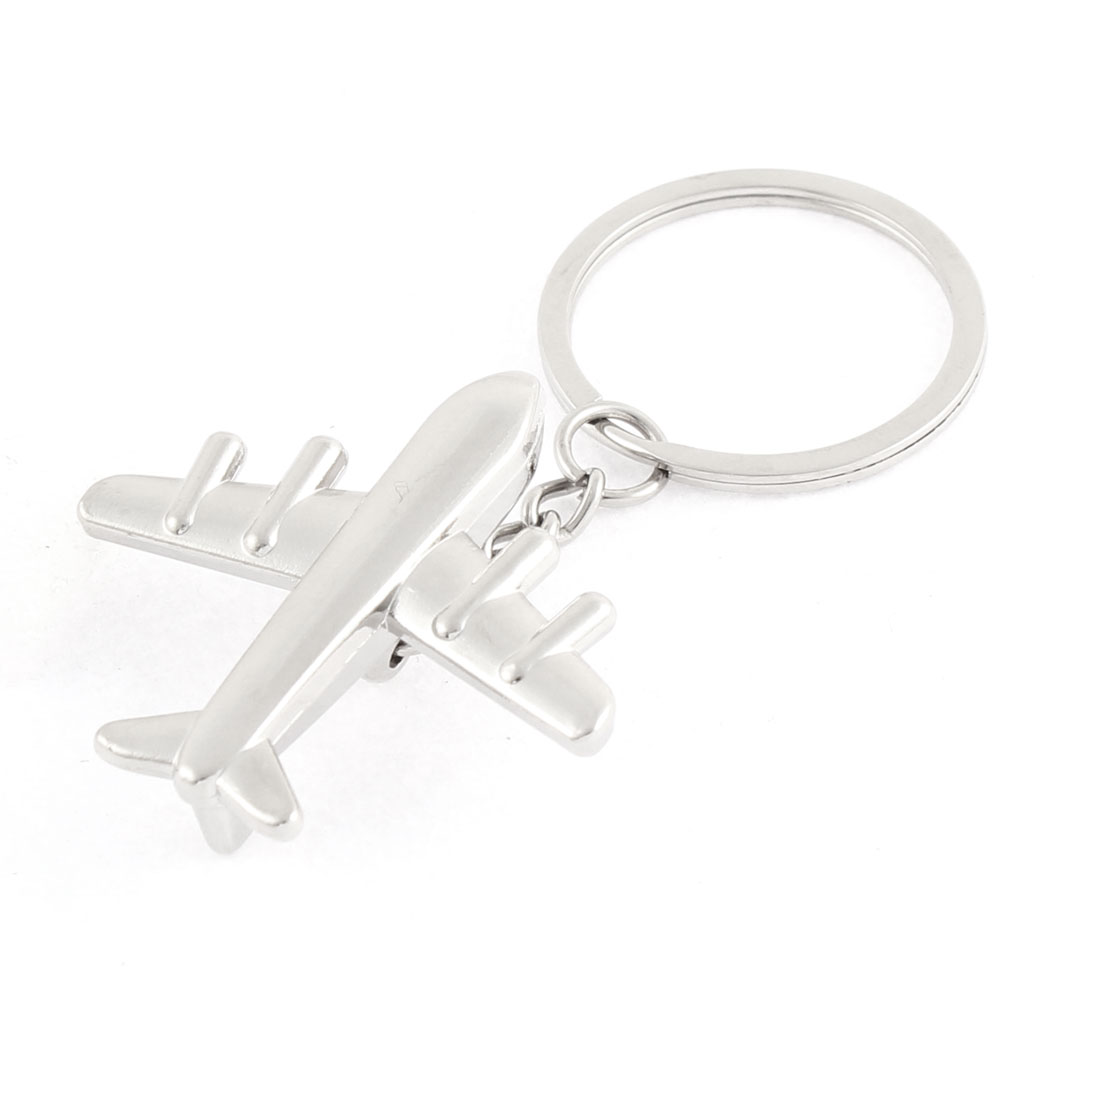 Silver Tone Plane Shape Stainless Steel Pendant Key Ring